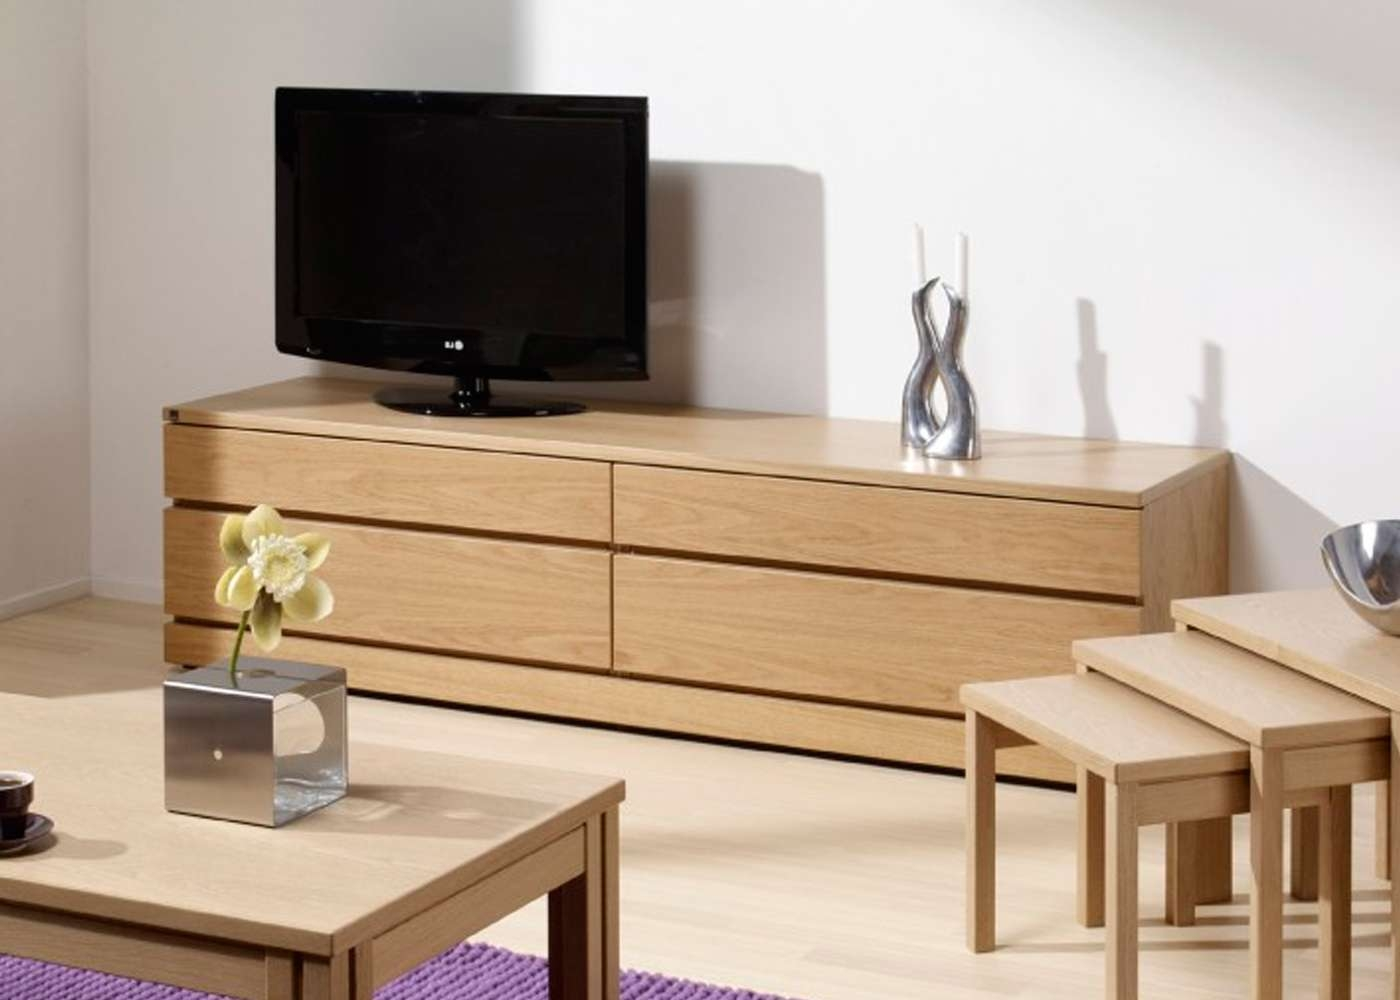 Skovby Sm87 Tv Cabinet In Light Oak Finish 1 – Midfurn Furniture With Regard To Light Oak Tv Cabinets (View 8 of 20)